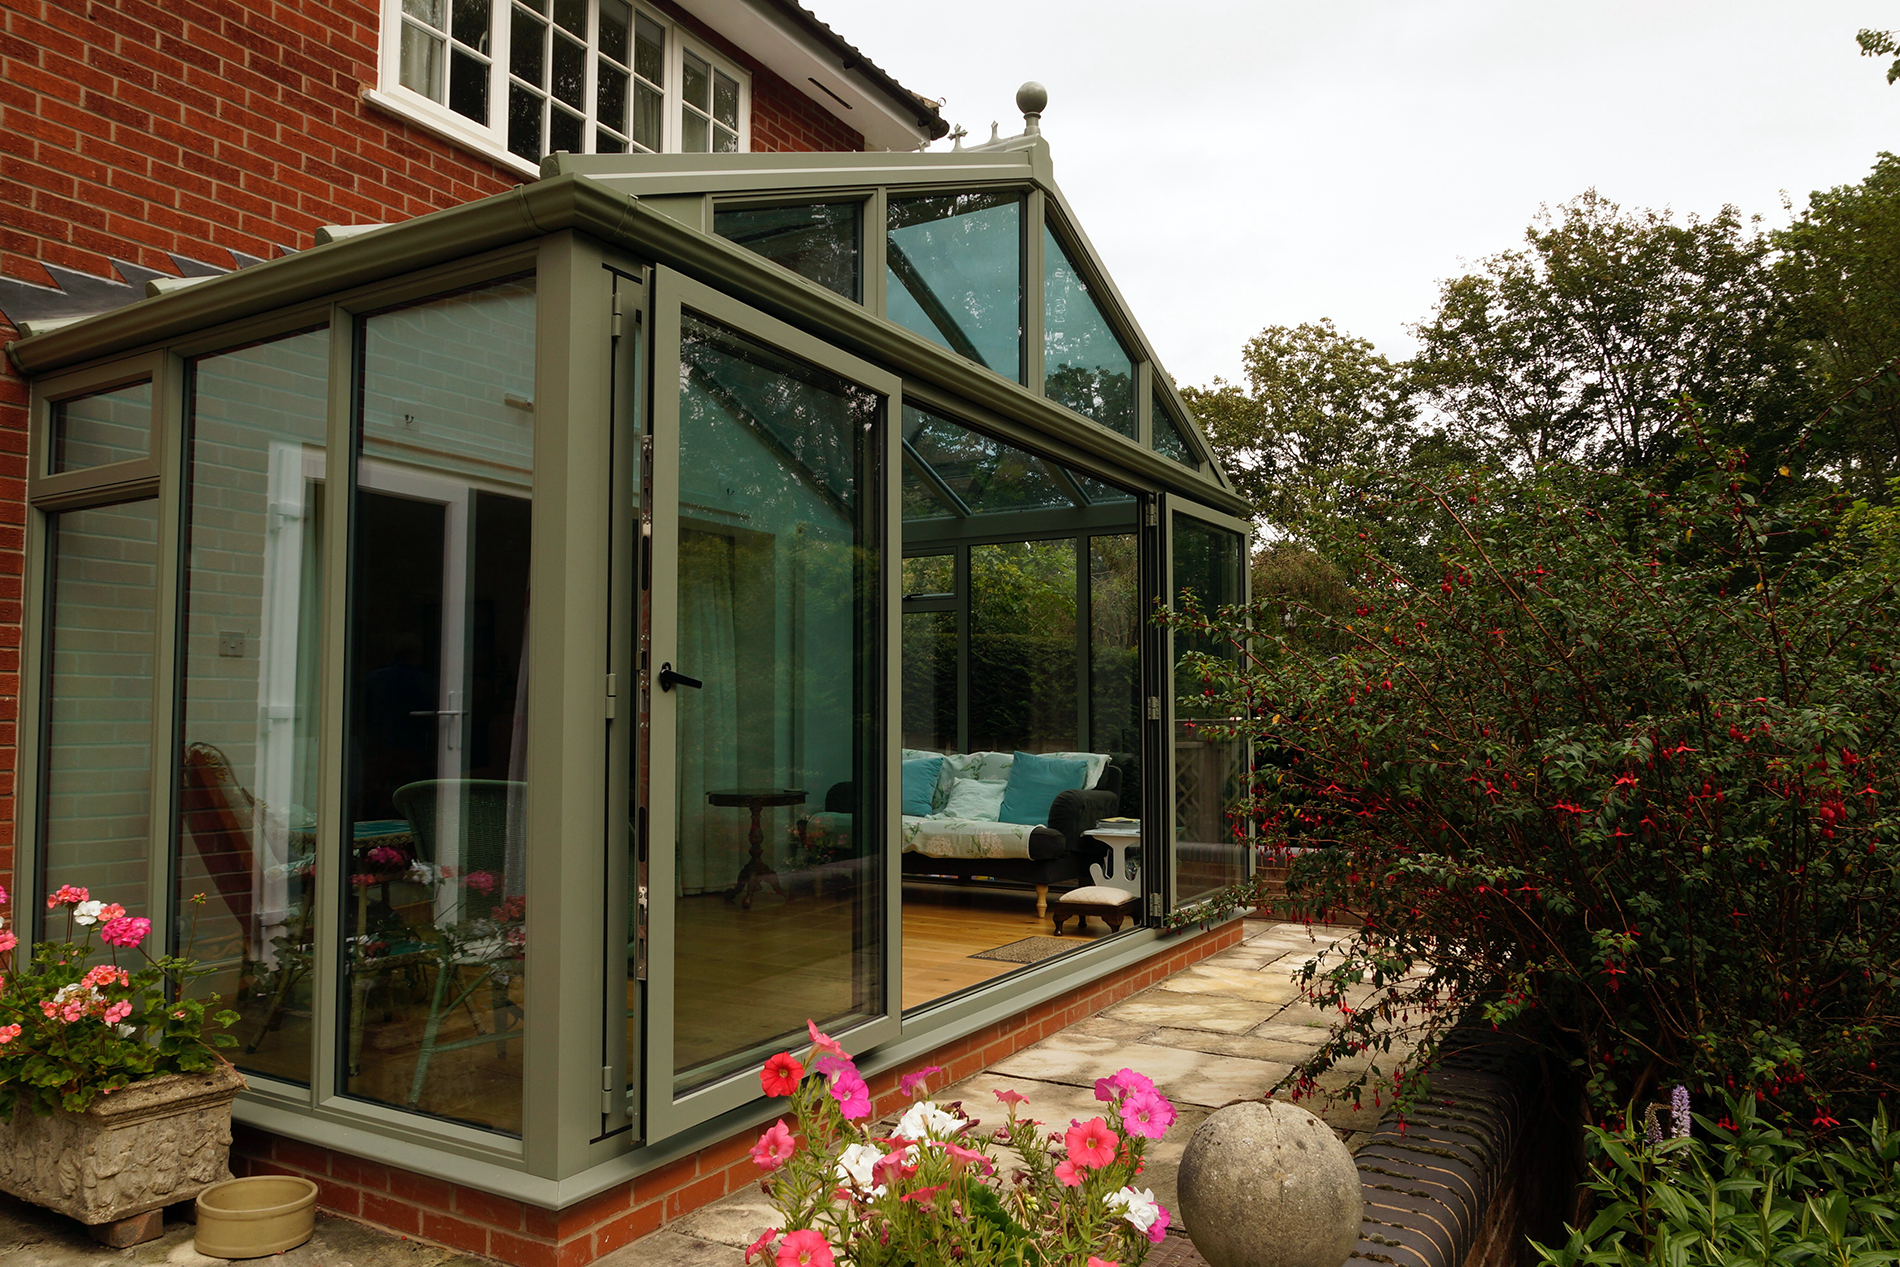 Classic uPVC conservatory with Gable Roof installed in Kenilworth, Warwickshire